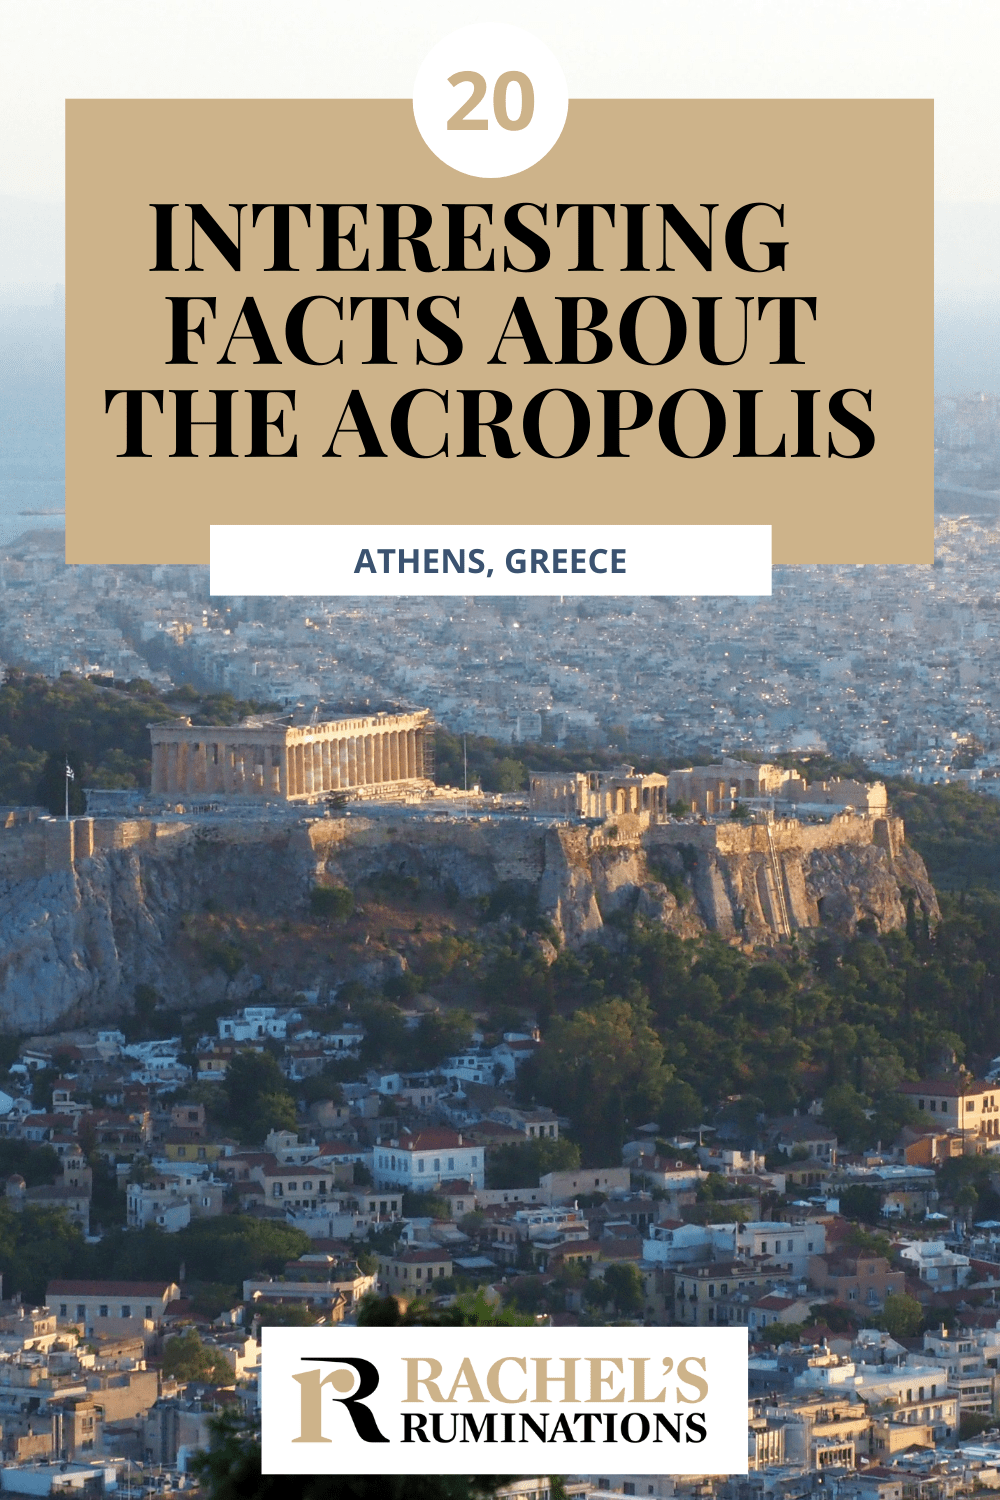 A gem of classical Greek architecture, the Acropolis is an absolute must-visit! Read these facts about the Acropolis in Athens before you go! via @rachelsruminations